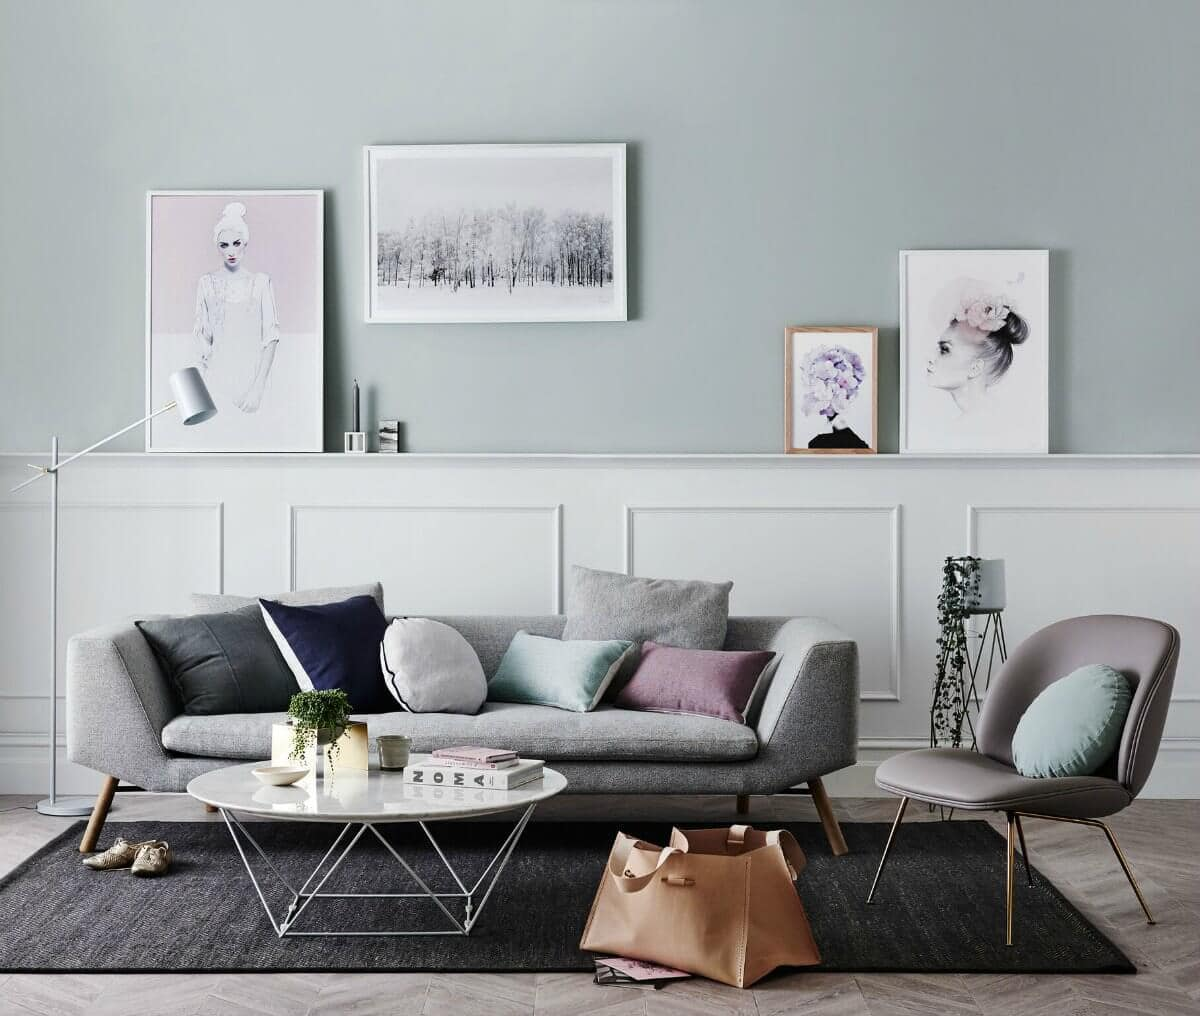 New Scandinavian Style for your Home from Norsu